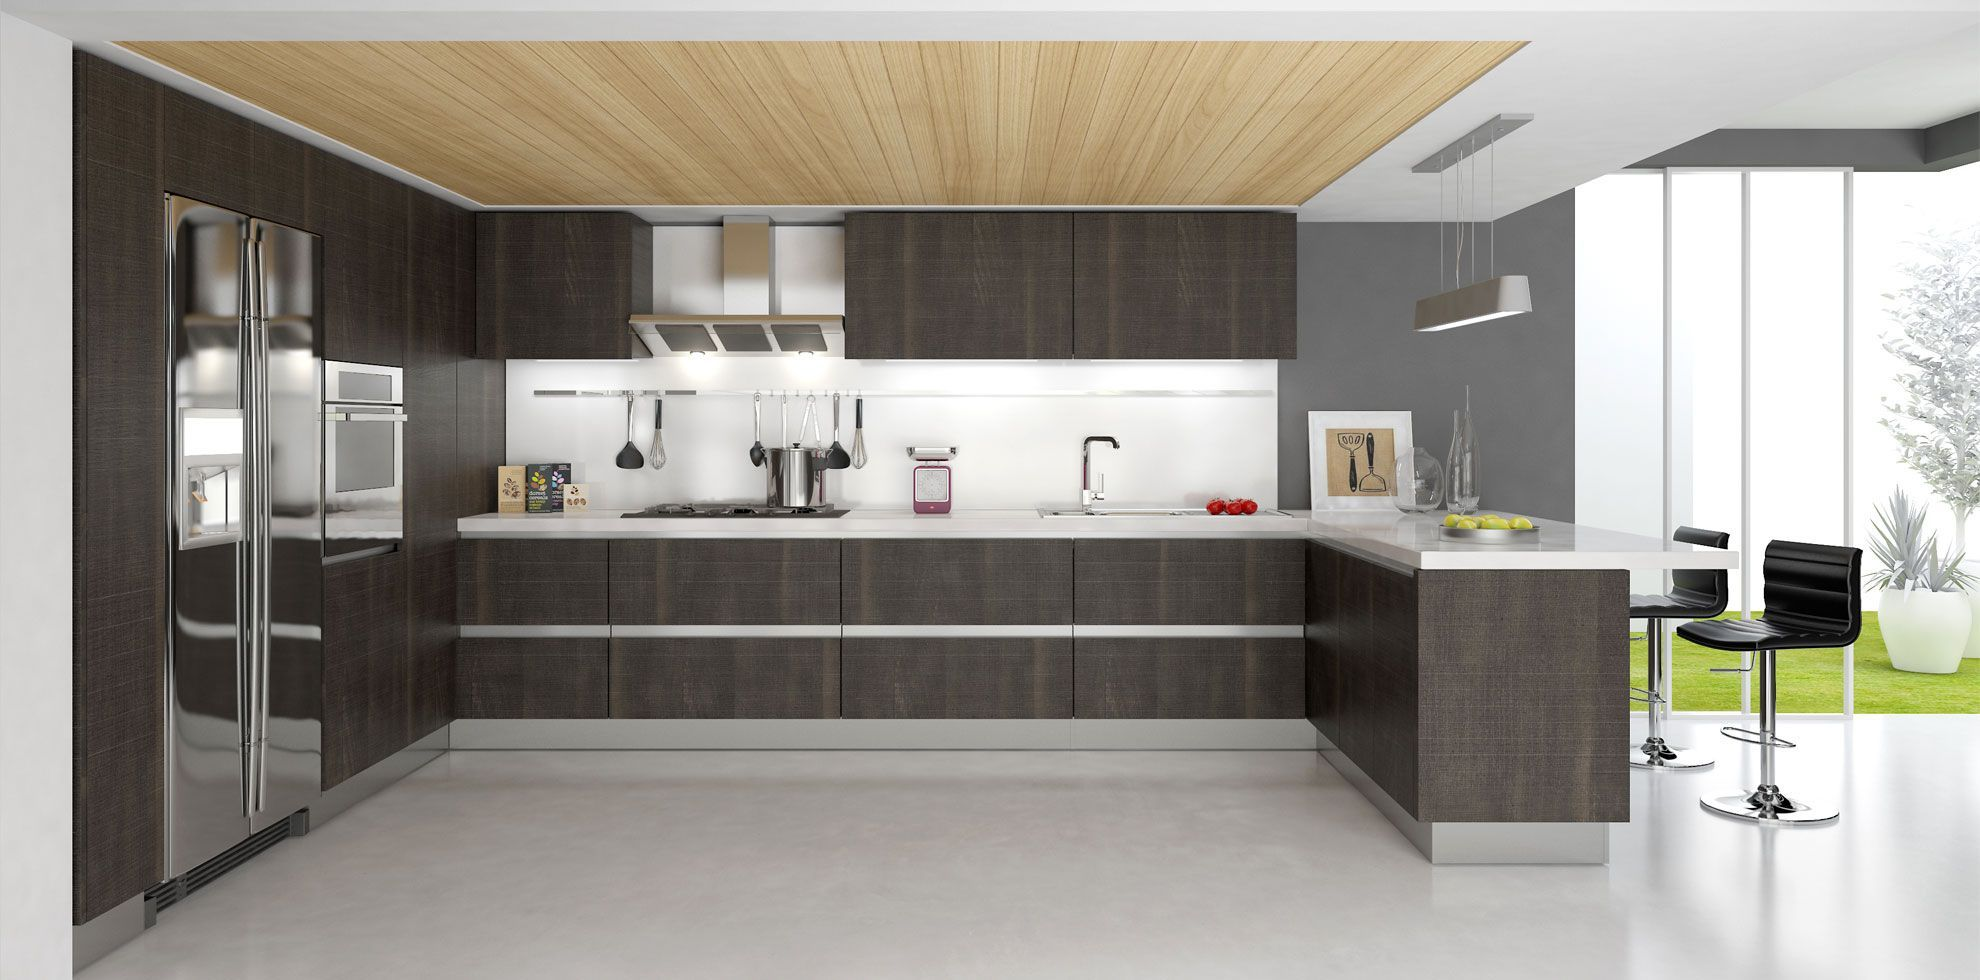 20 prime examples of modern kitchen cabinets contemporary kitchen design modern kitchen on kitchen cabinets modern contemporary id=63175